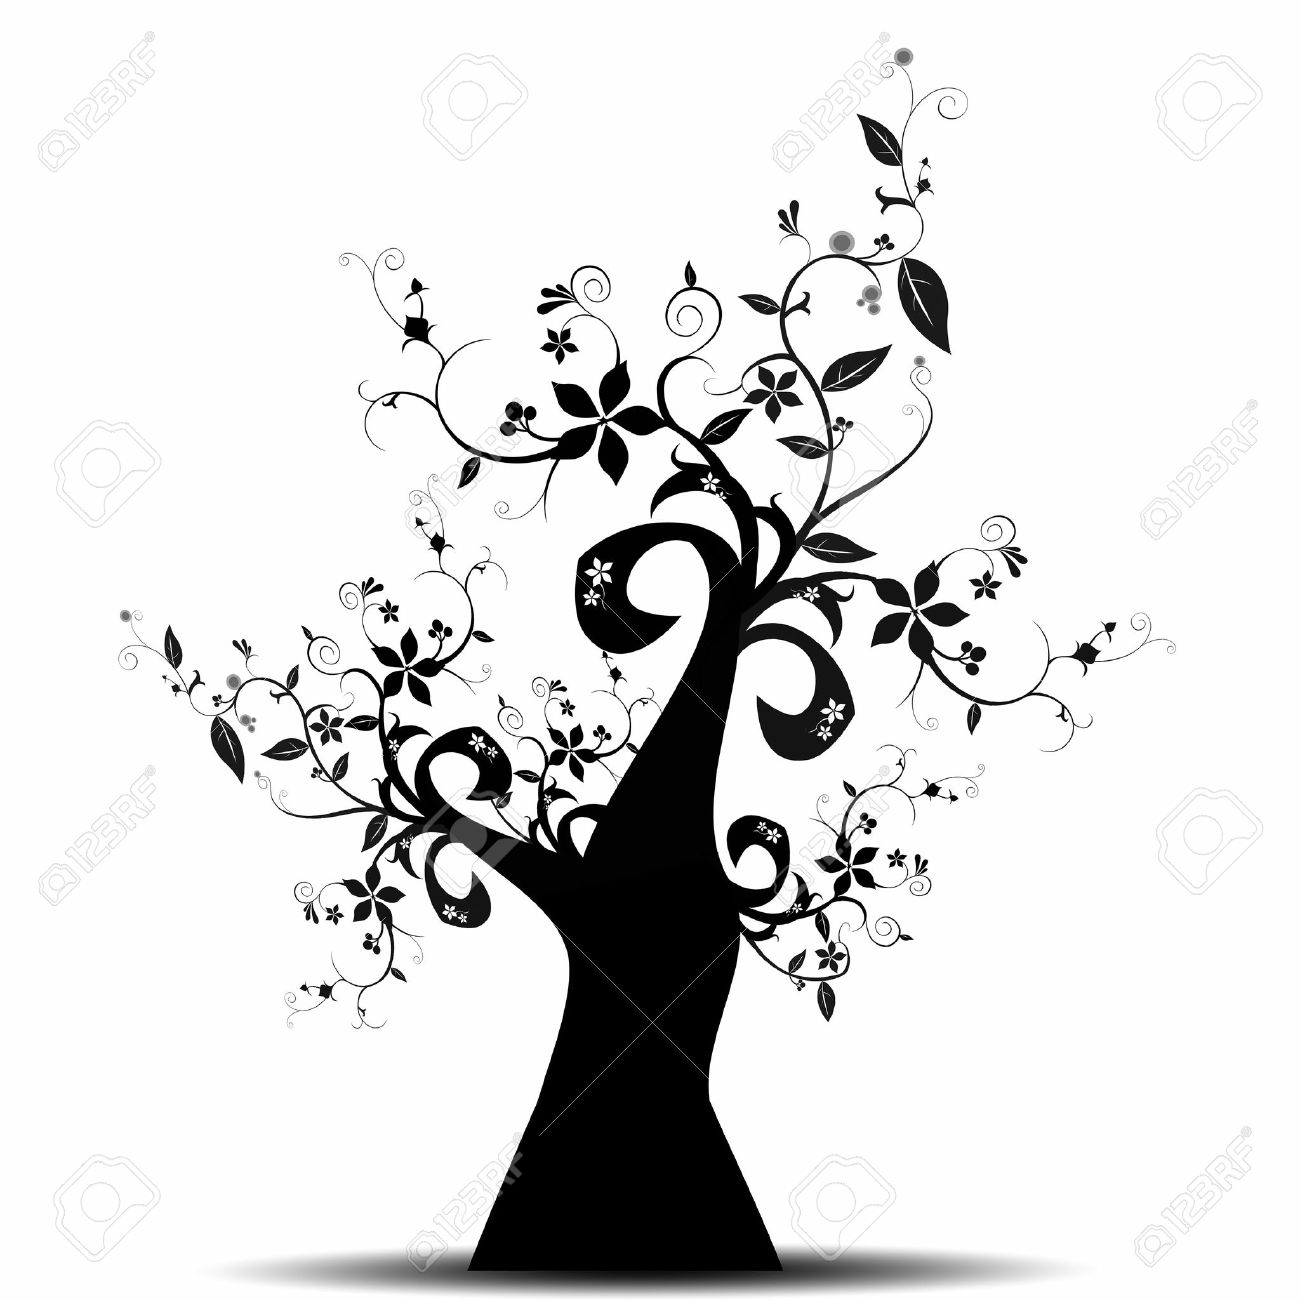 Beautiful abstract art tree isolated on white background Stock Vector - 10182466